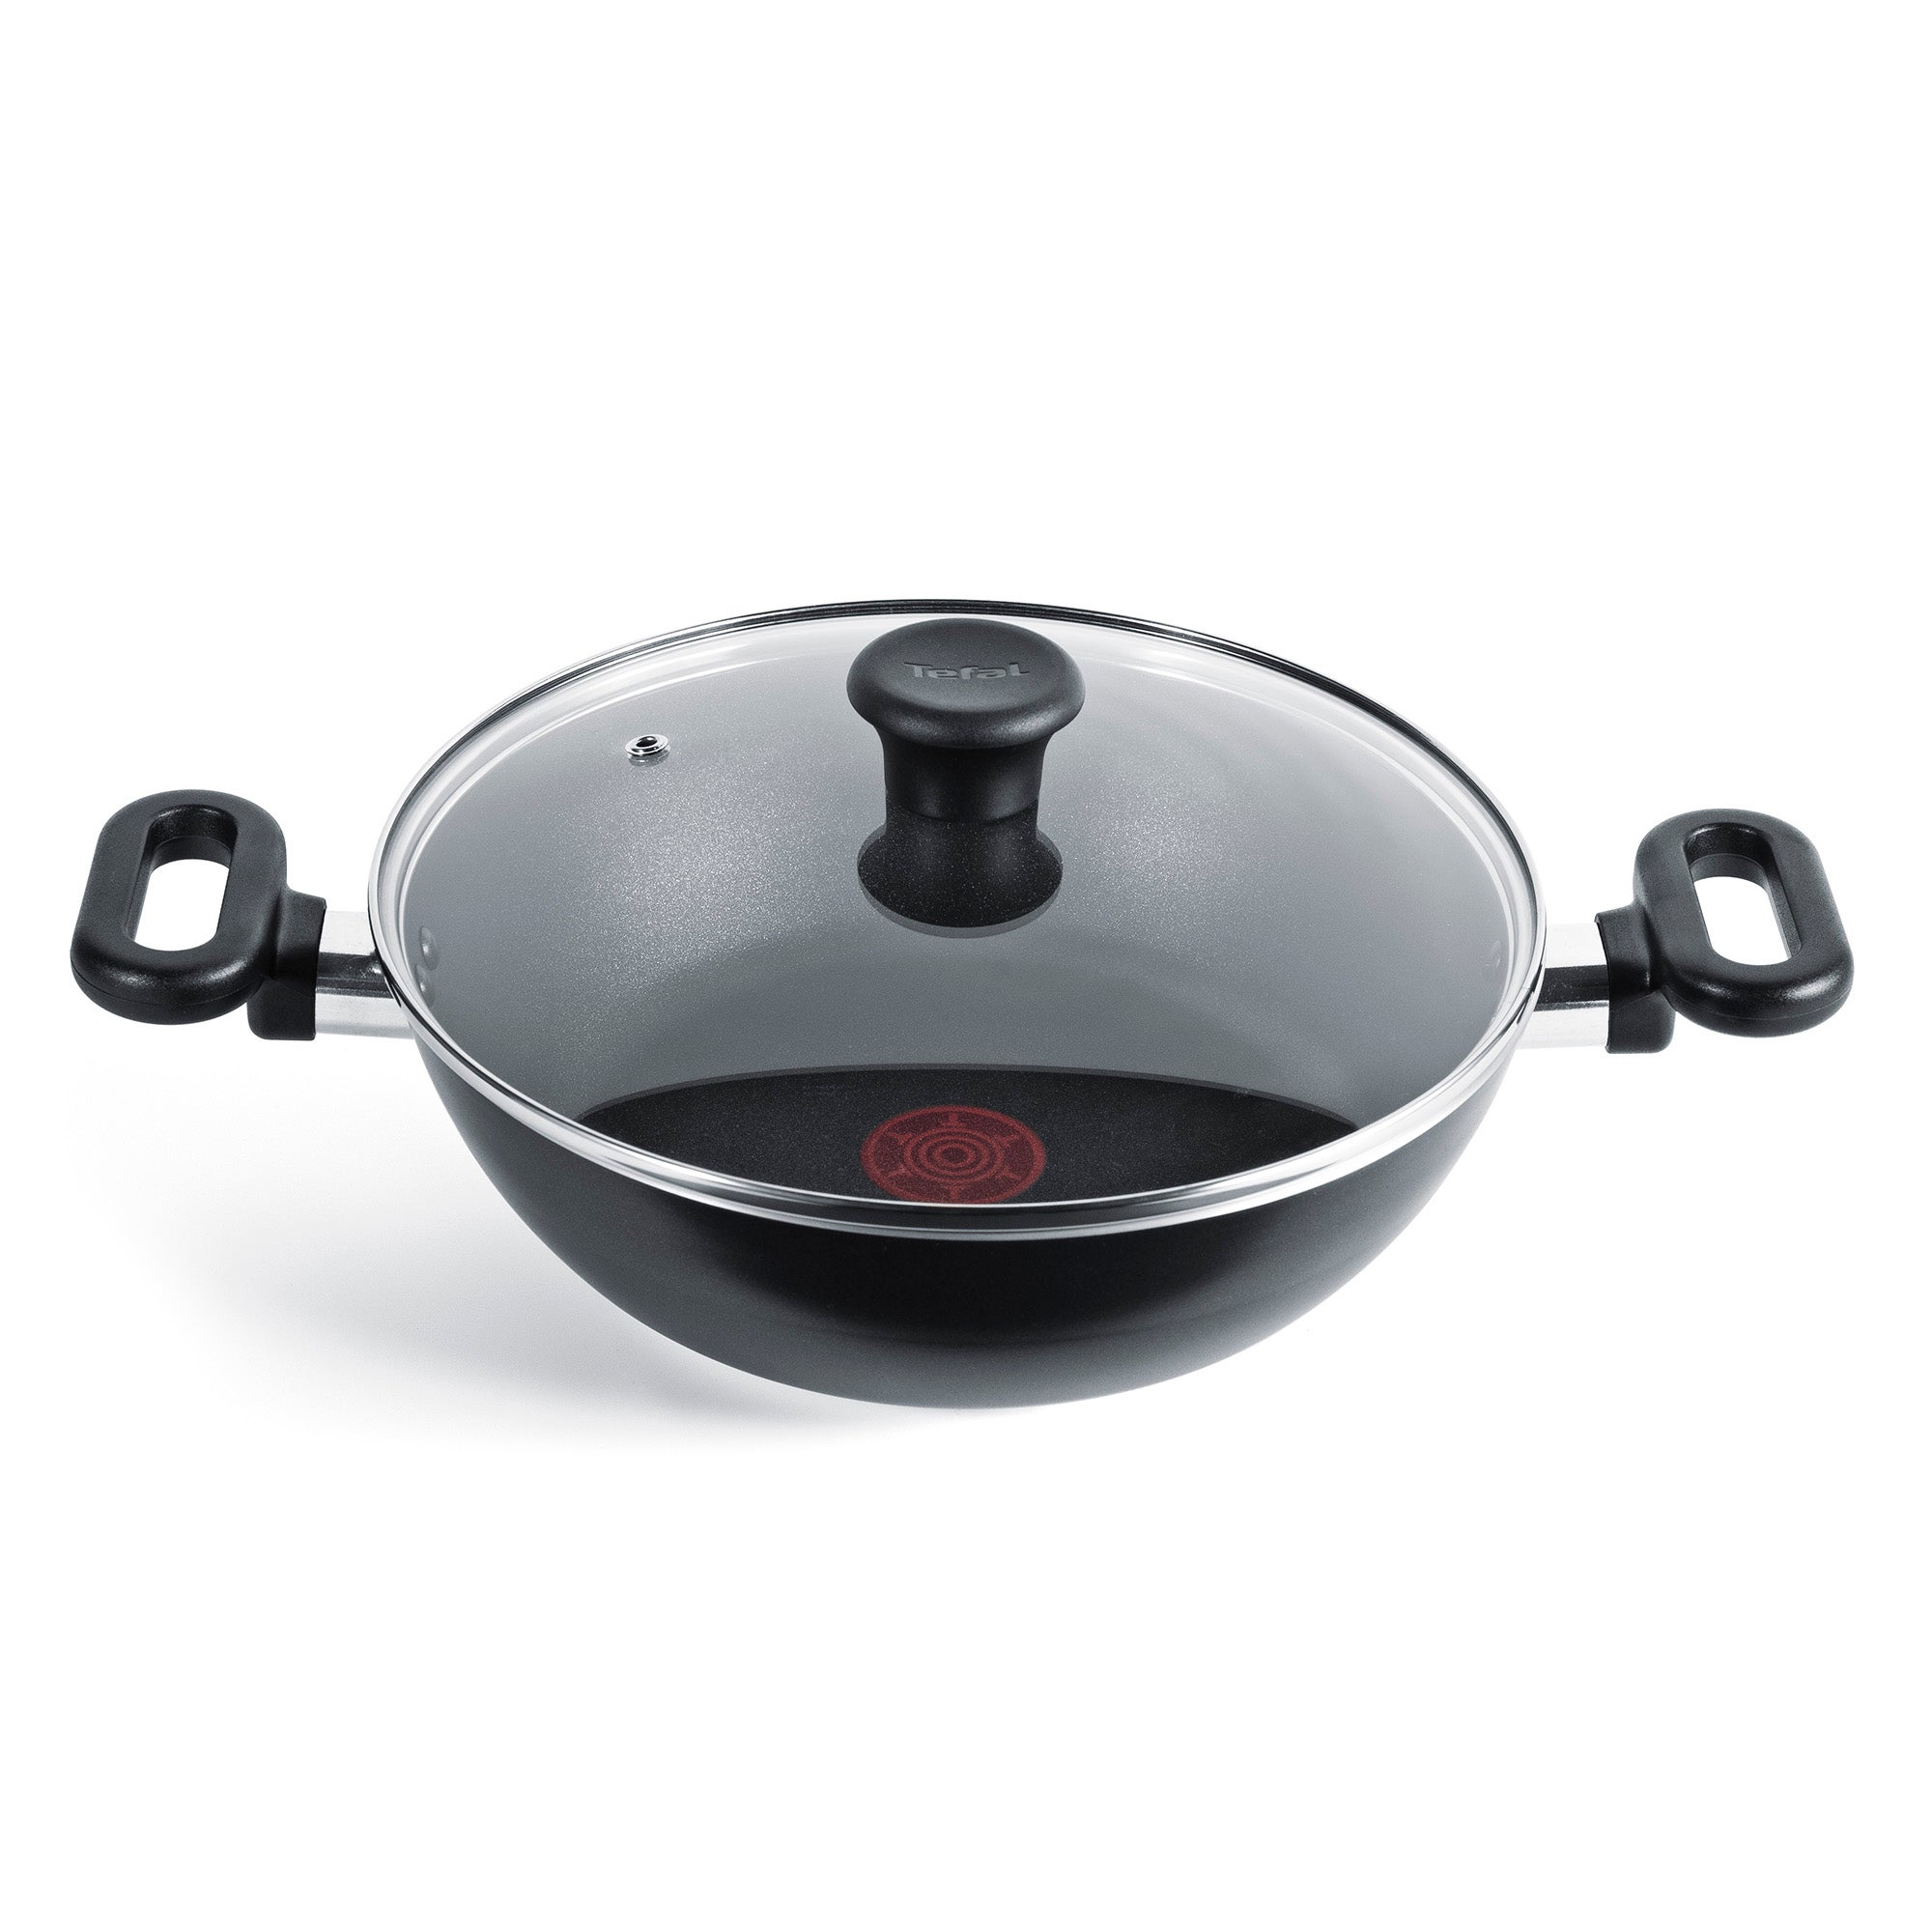 Photo of Tefal indian kadai pan black